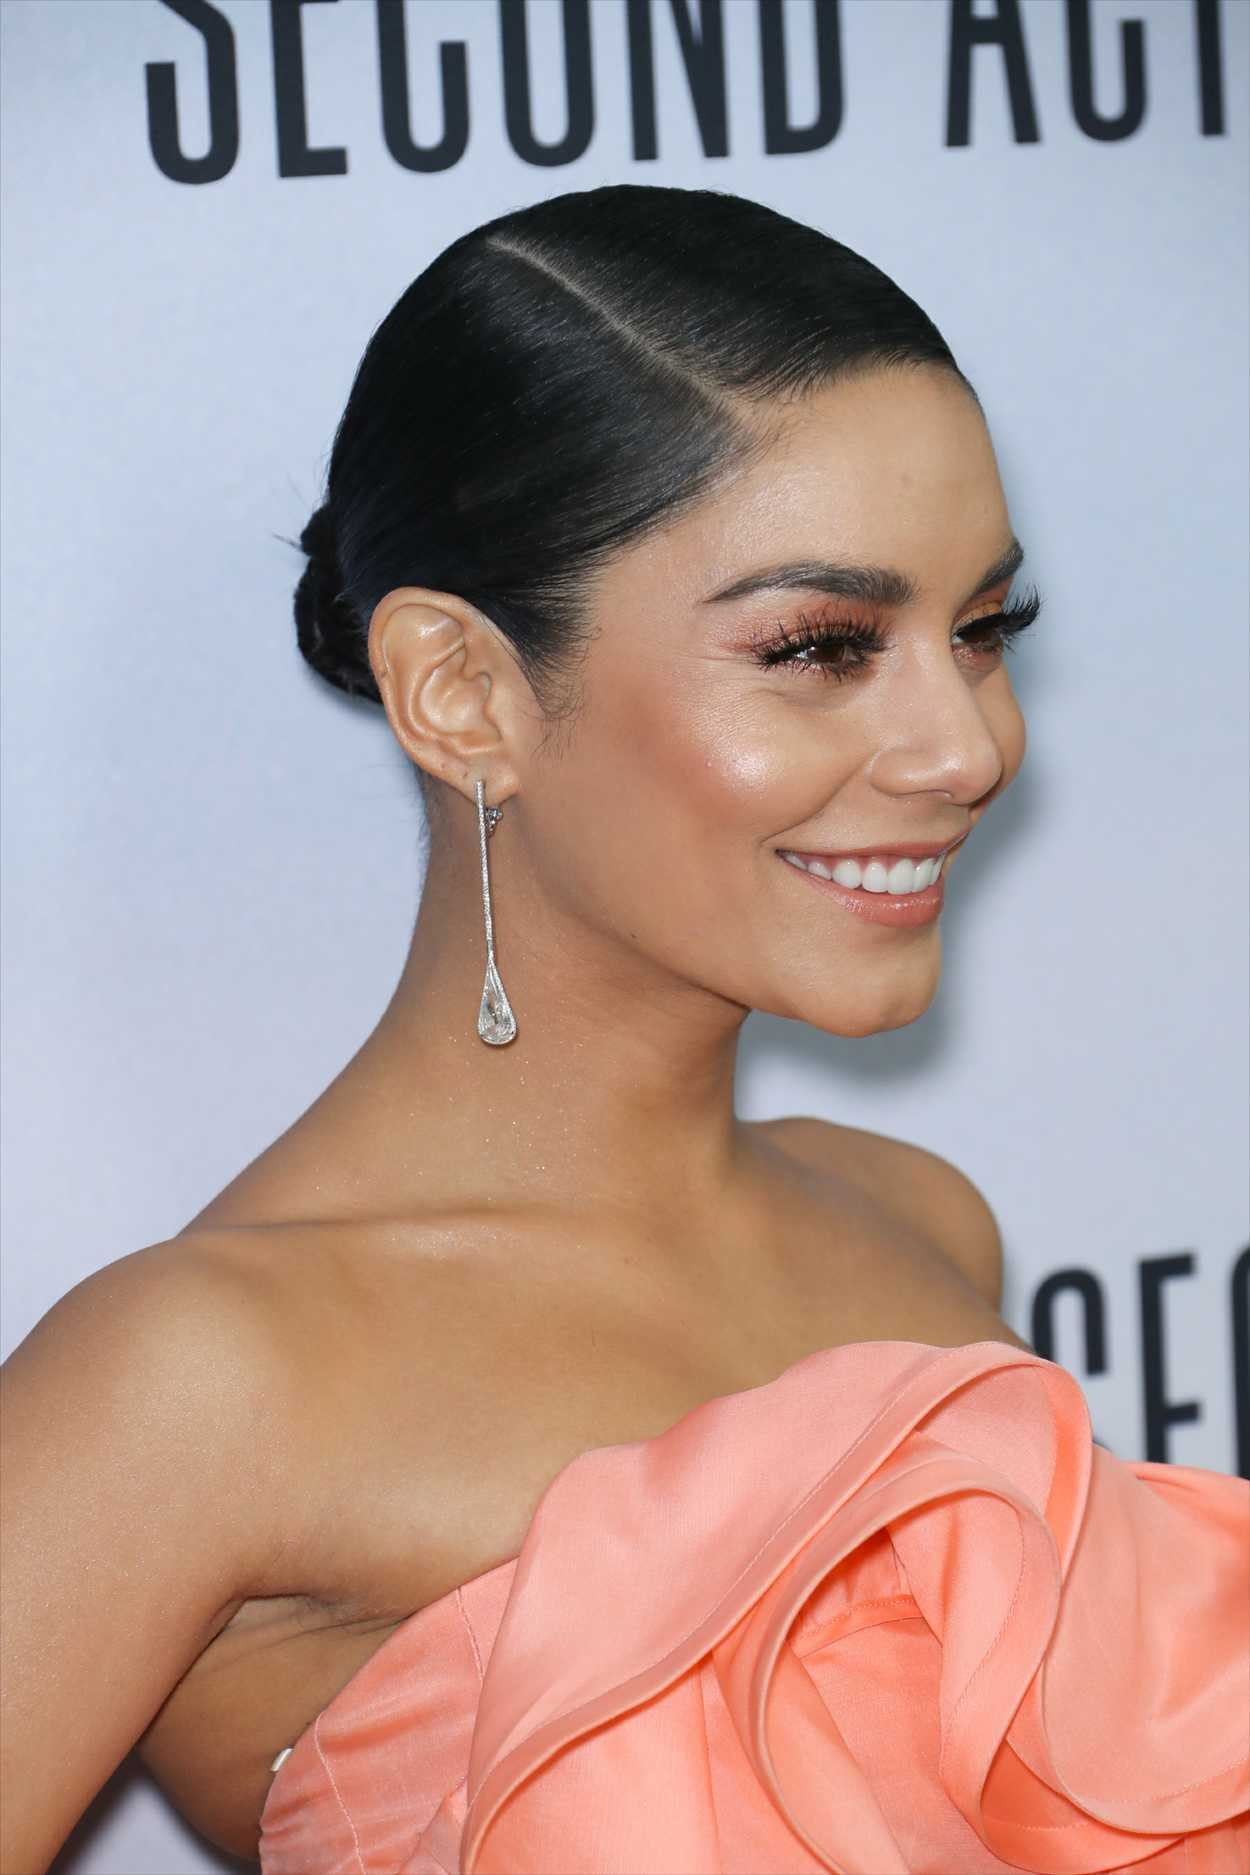 Vanessa Hudgens Attends Second Act Premiere In New York 12